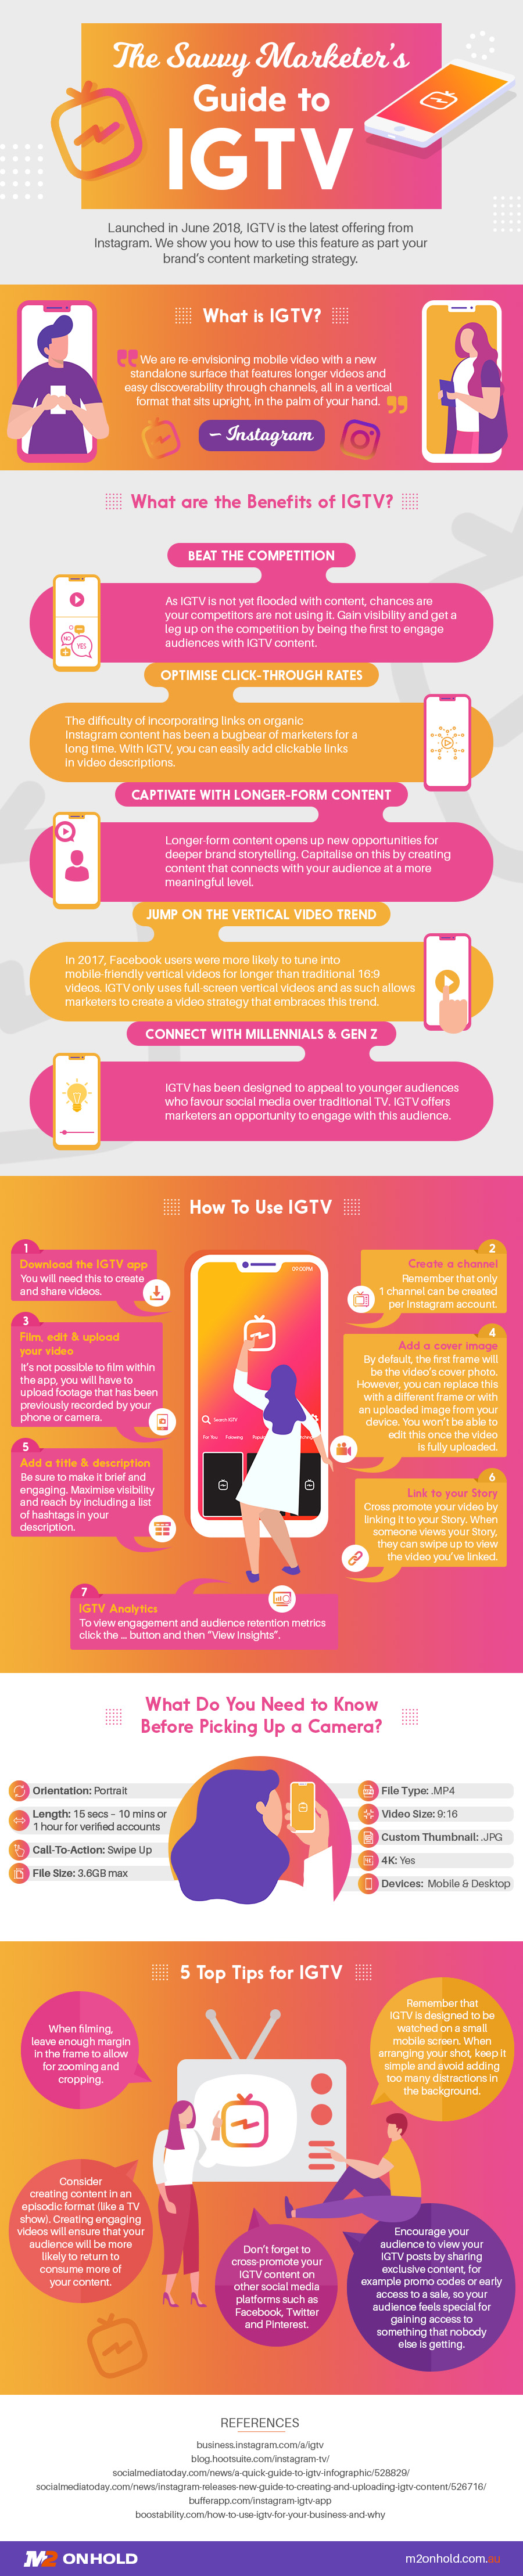 The-Savvy-s-Marketers-Guide-to-IGTV--Infographic